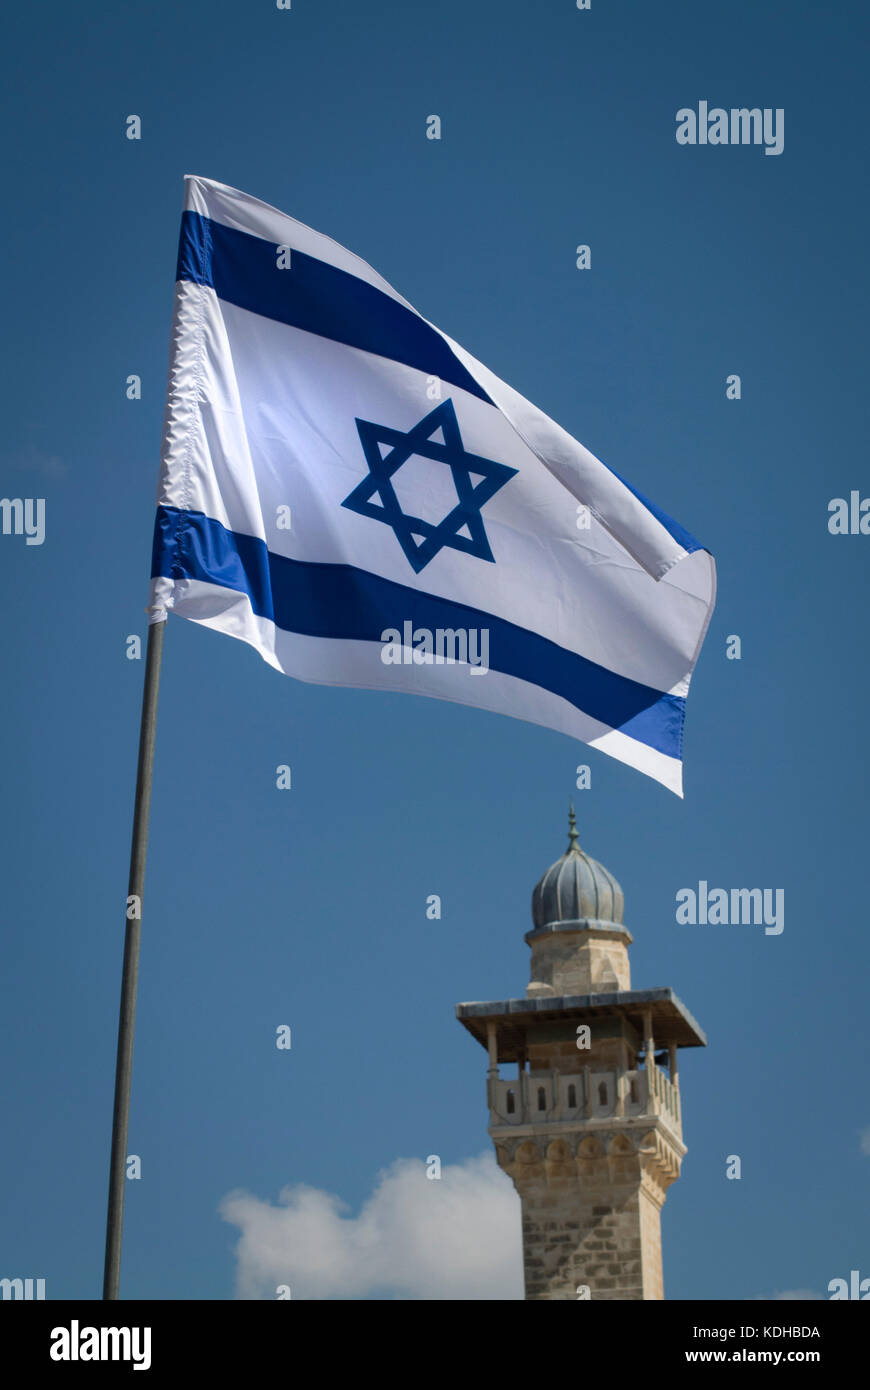 The flag of Israel with a minaret behind at the Western Wall in Jerusalem, Israel Stock Photo